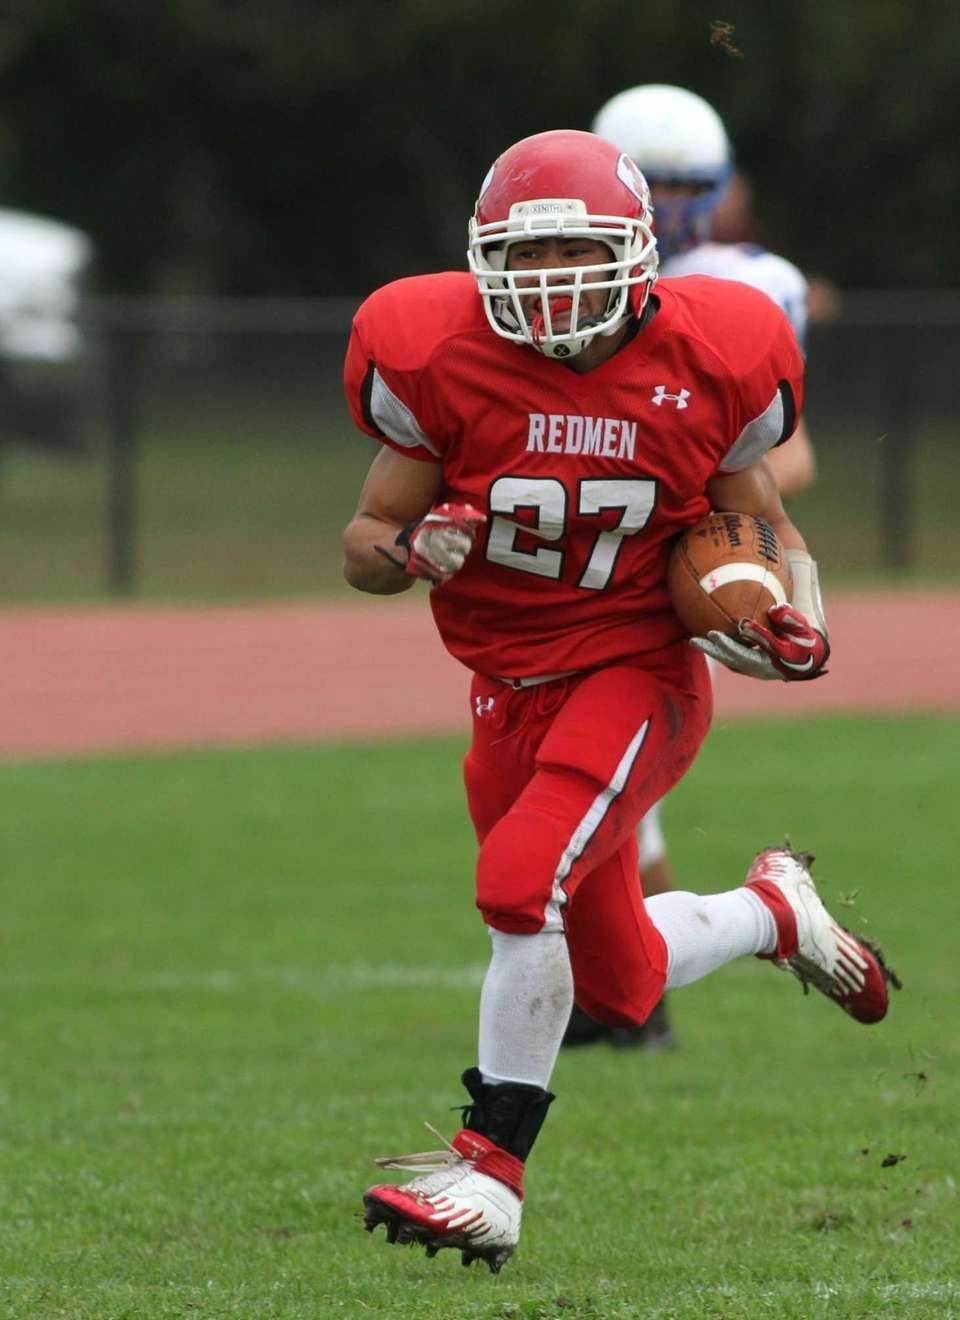 East Islip's Andre Deegan runs past North Babylon's